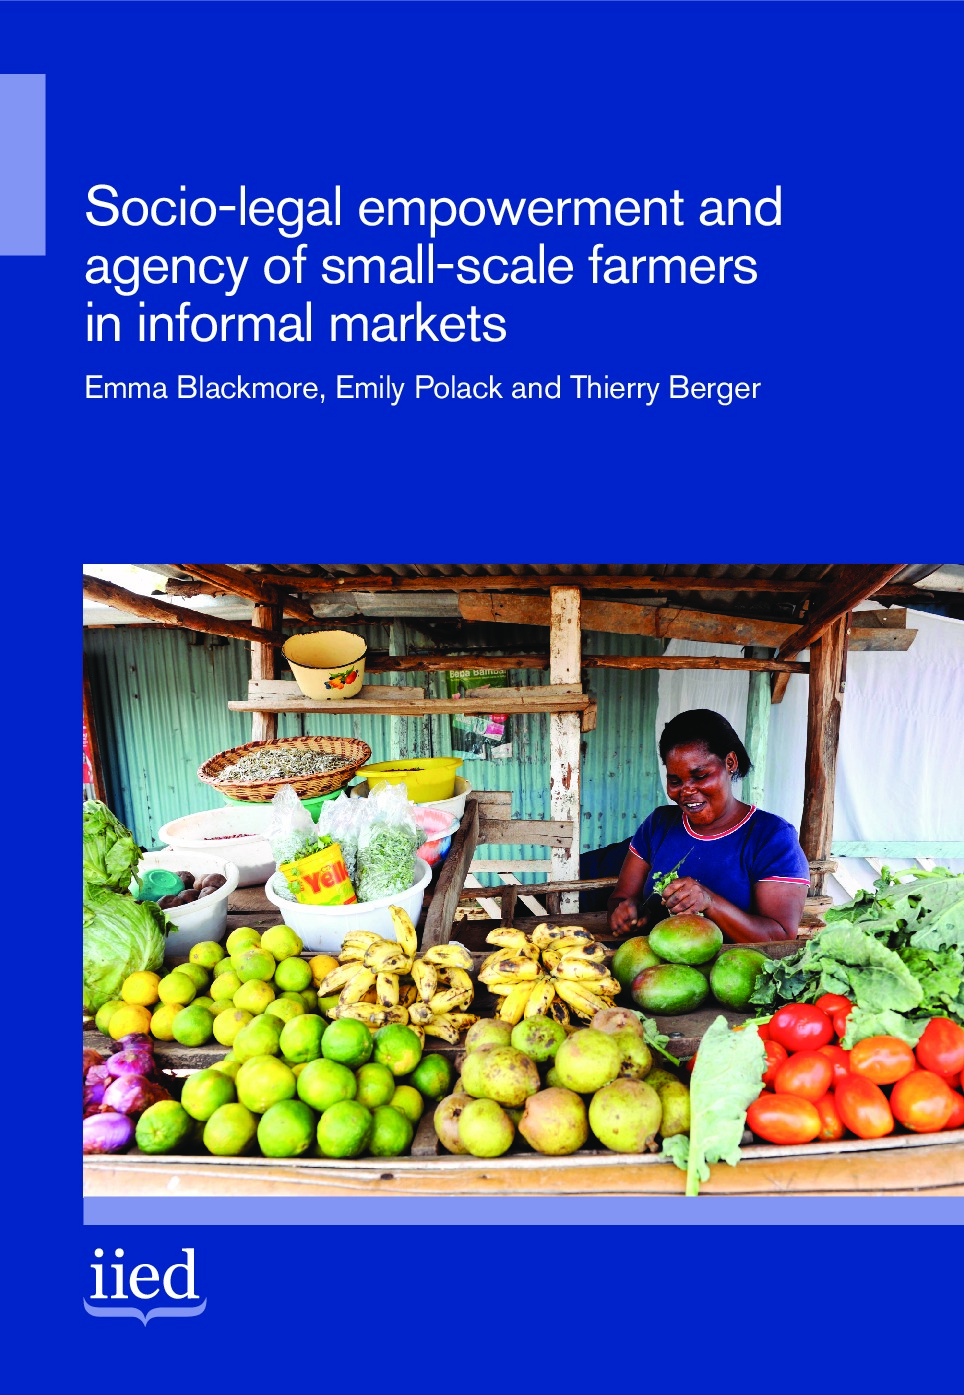 Socio-legal empowerment and agency of small-scale farmers in informal markets